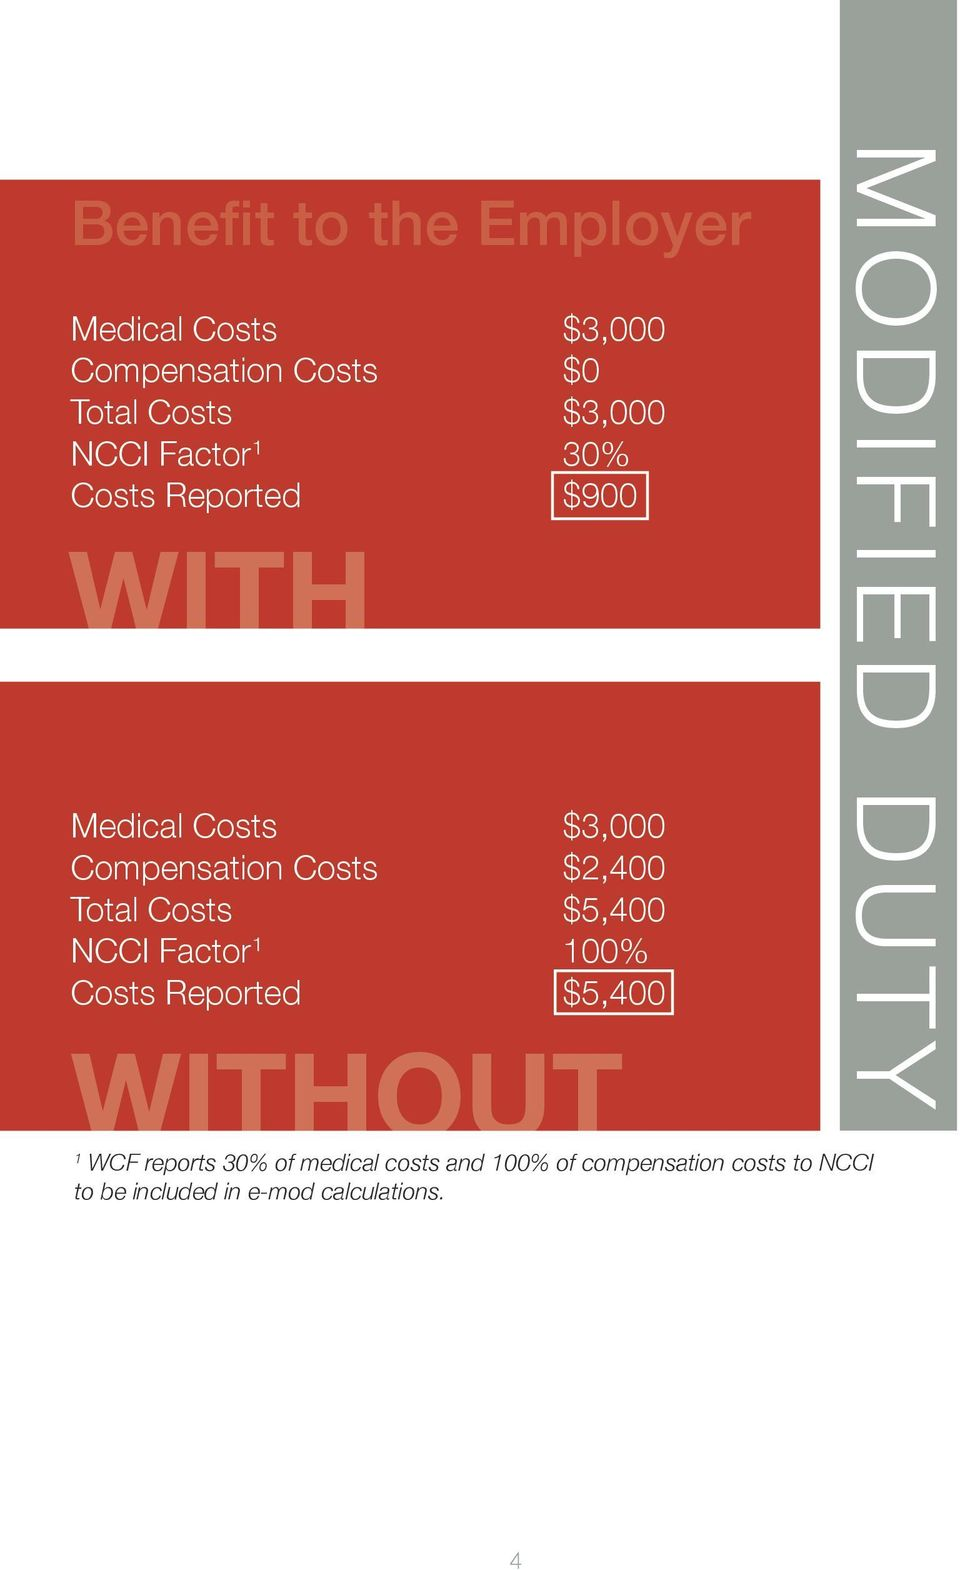 Costs $5,400 NCCI Factor 1 100% Costs Reported $5,400 WITHOUT 1 WCF reports 30% of medical